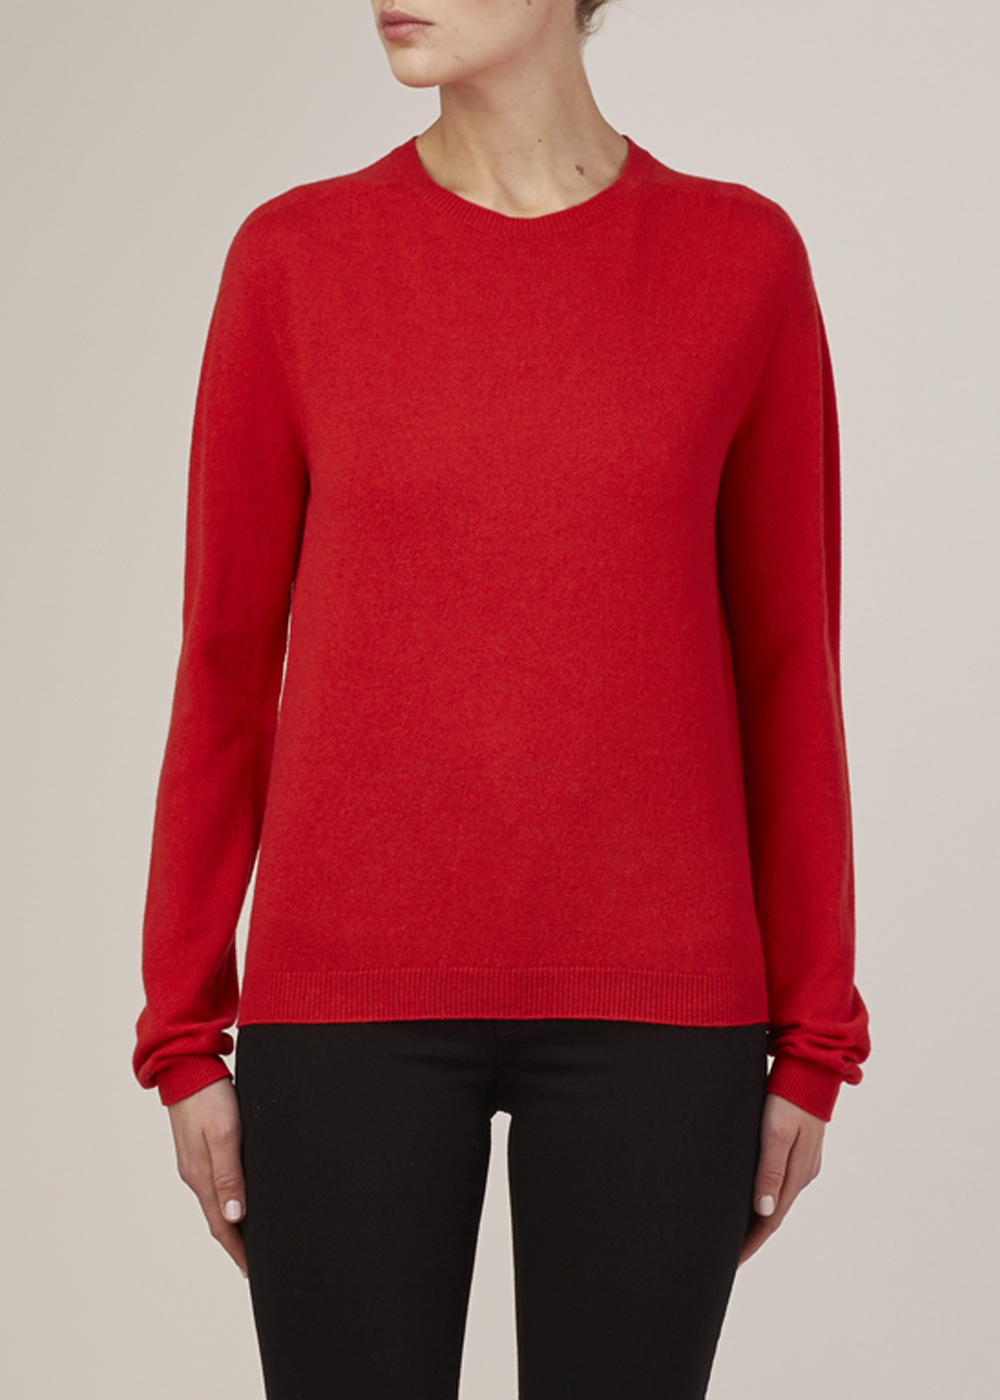 Jil Sander Red Cashmere Crewneck Sweater